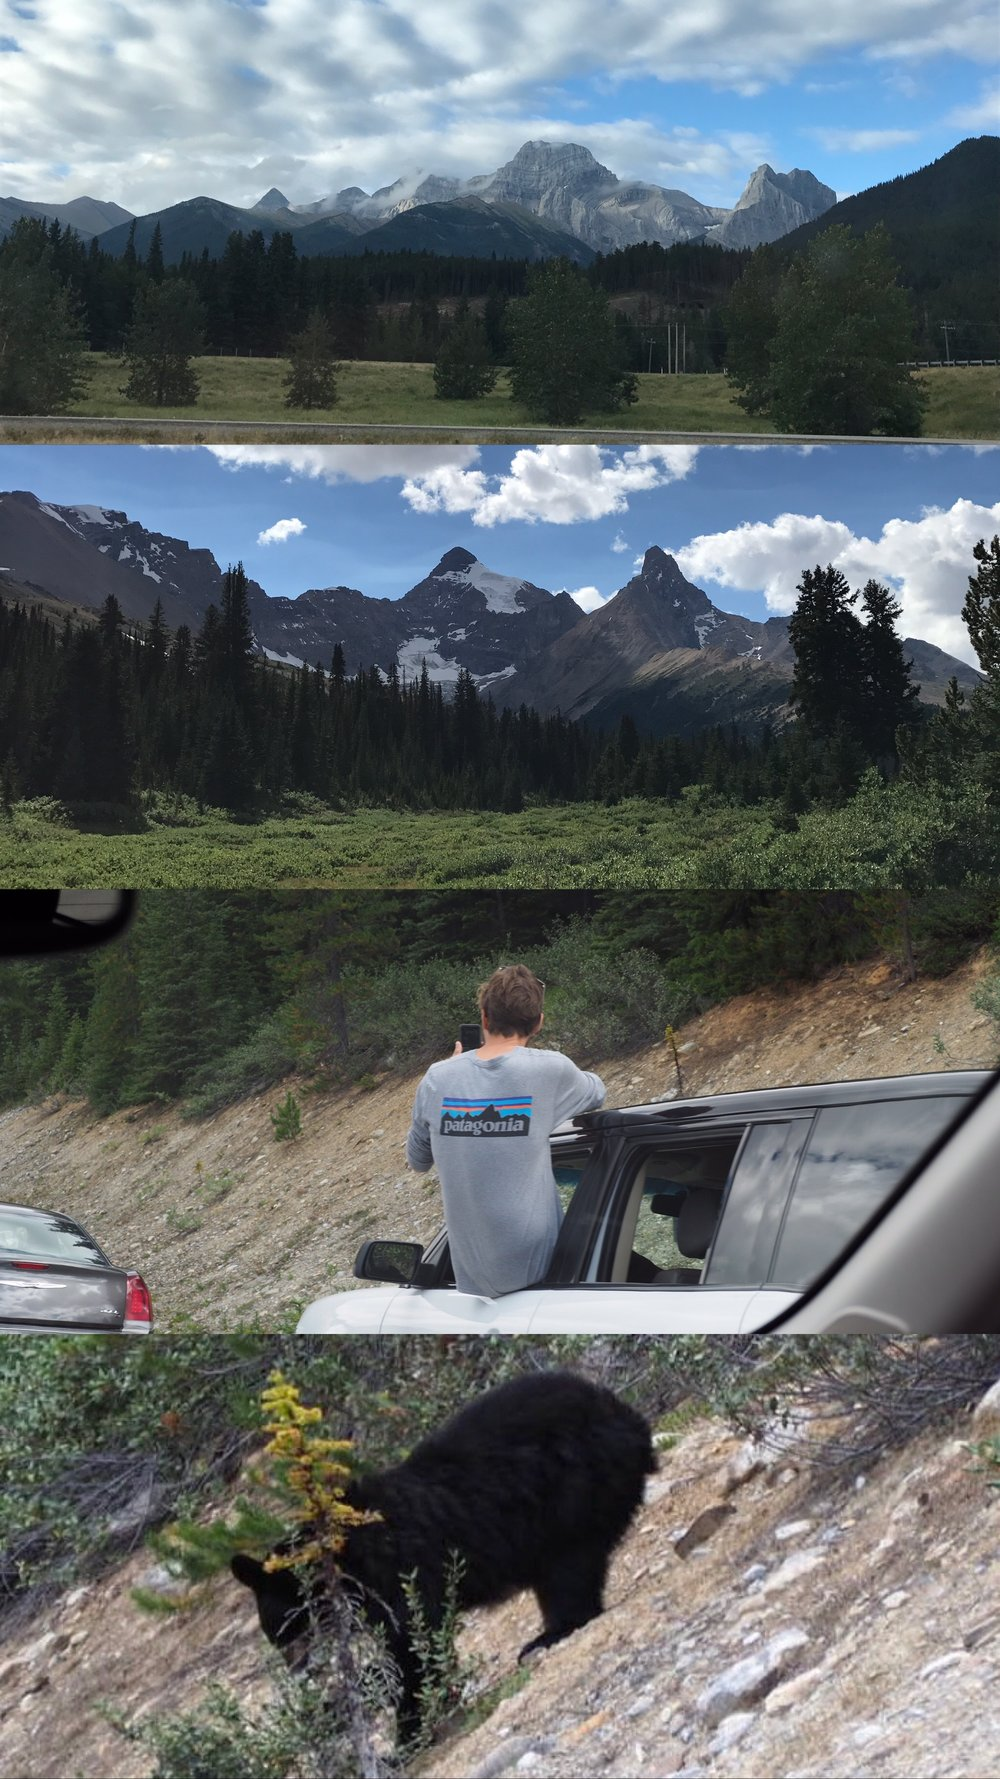 I got my rental car as soon as I could and drove to Banff in the eastern Canadian Rockies. Promptly met with Mia's family and we headed out for the day - saw bears on the side of the road